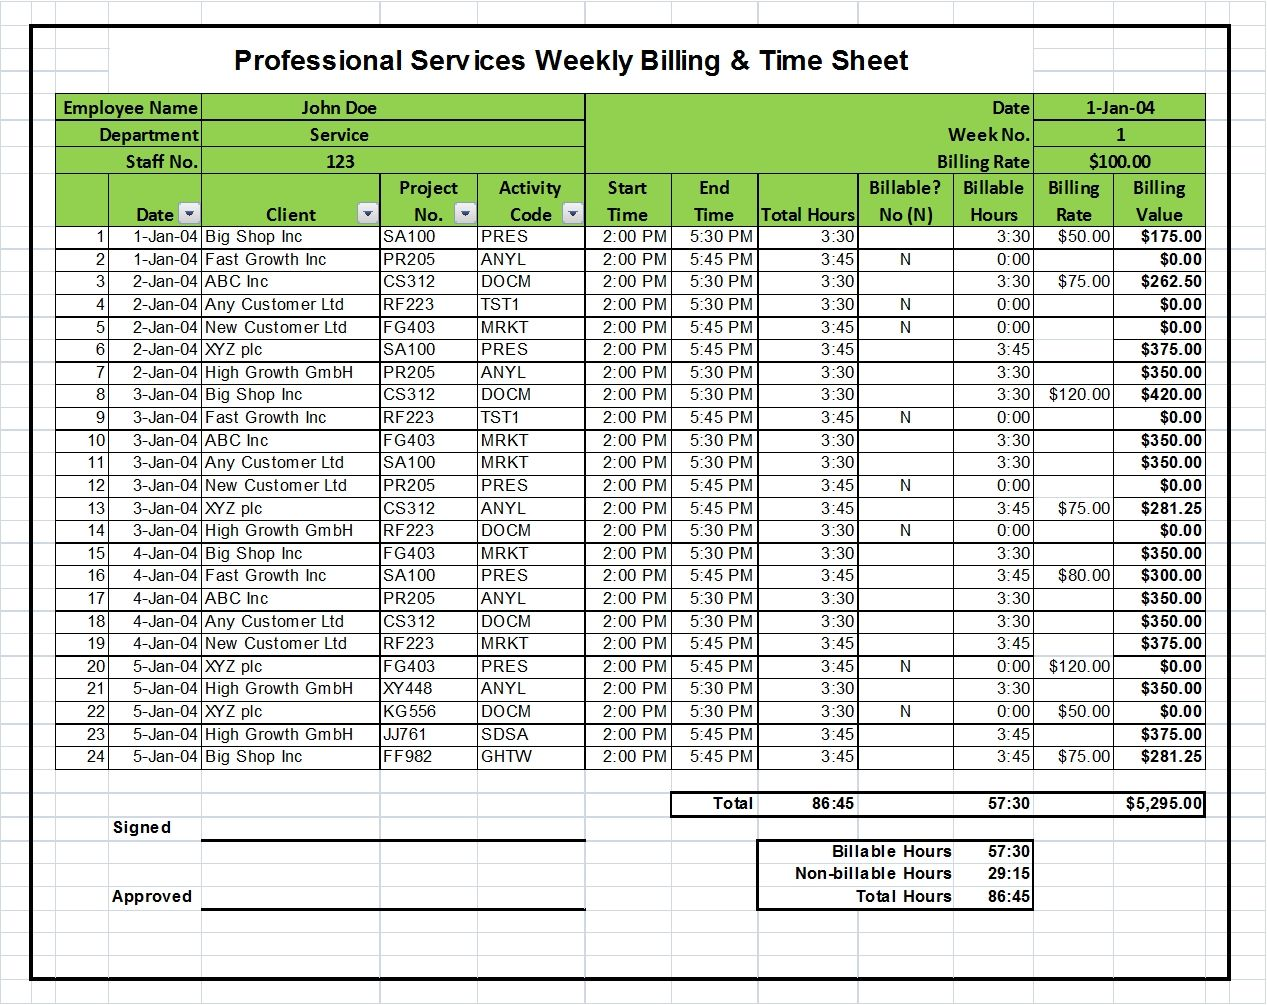 Excel Billing Timesheet Templates for Professional Services ...